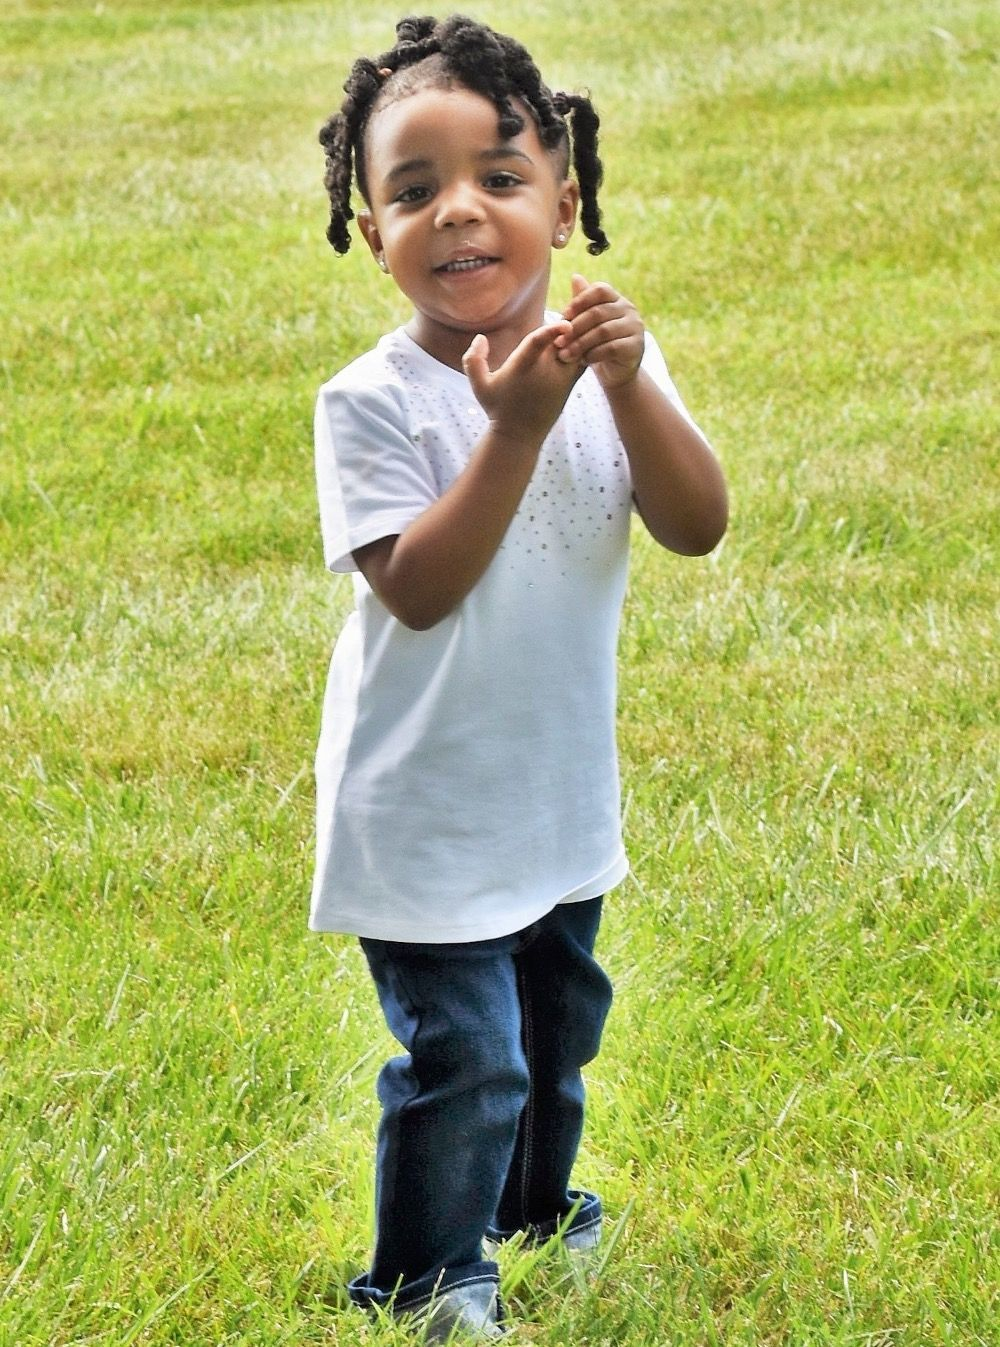 The toddler was accidentally shot by her 3-year-old brother Isaiah (Source: GoFundMe)